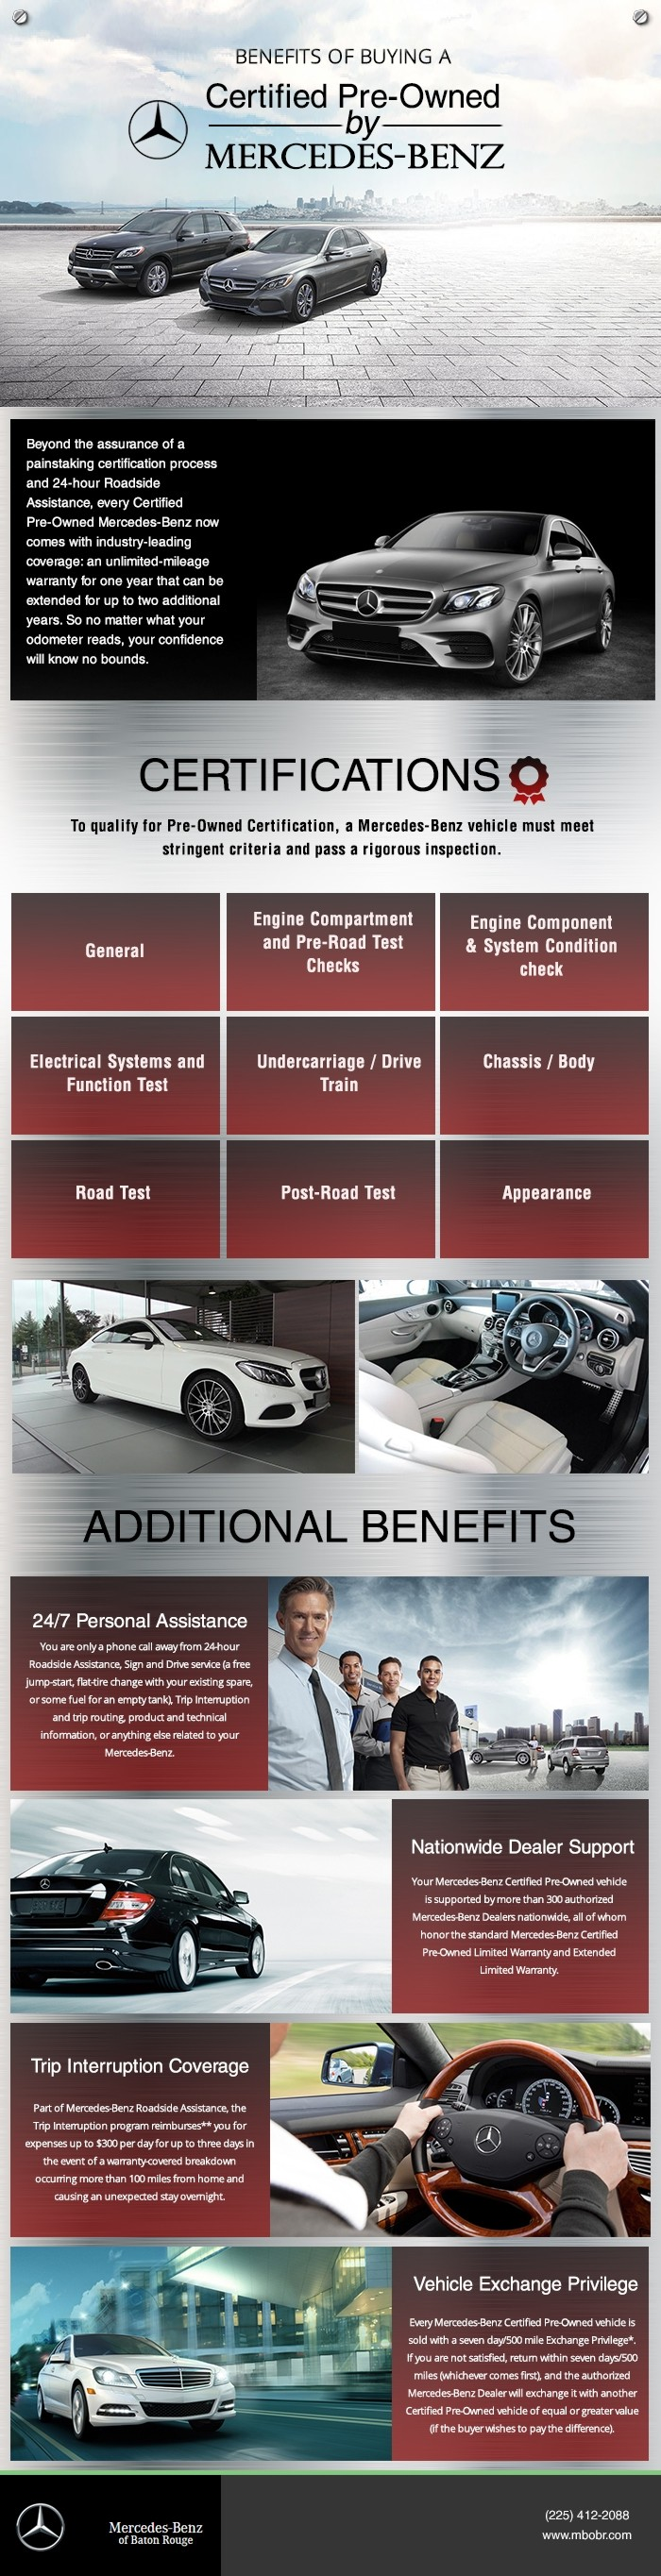 Benefits of buying a certified pre owned mercedes benz for Mercedes benz baton rouge service